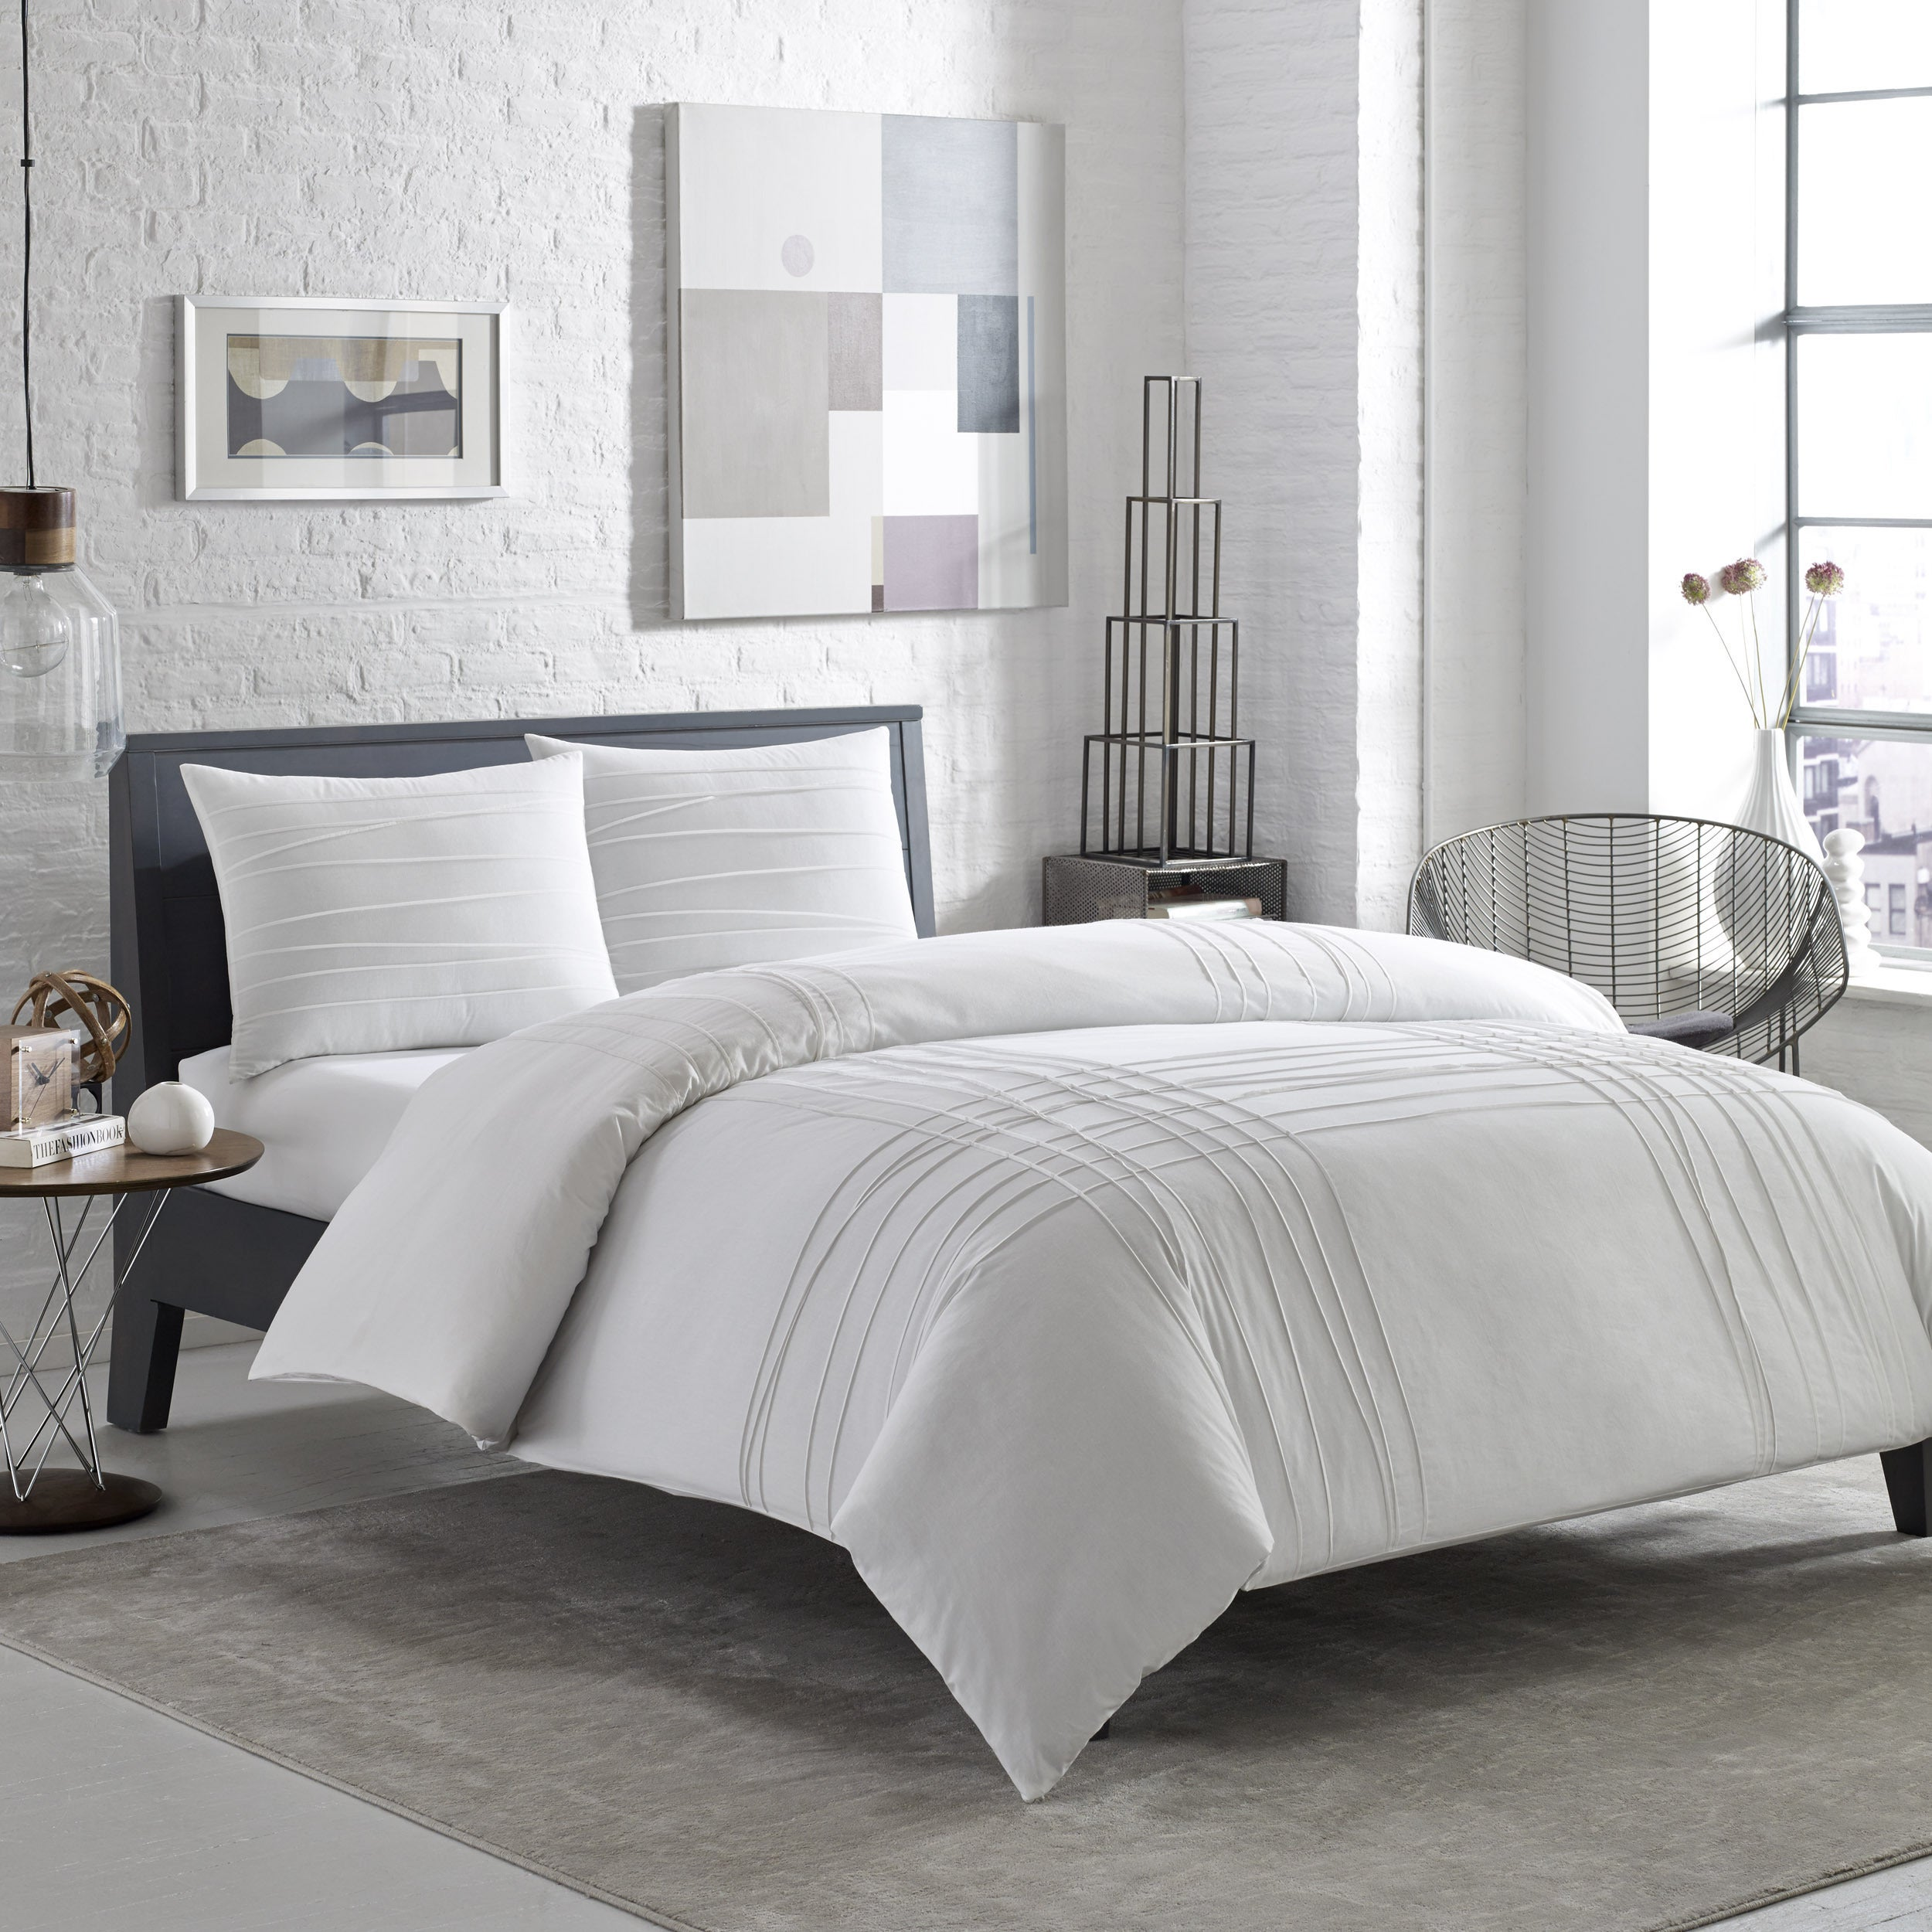 ideas queen comforter comfor set bed ross white stylish beyond kmart bedding target sets bath cotton cream comforters quilts teen and bedspreads overstock cozy for bedroom com sears